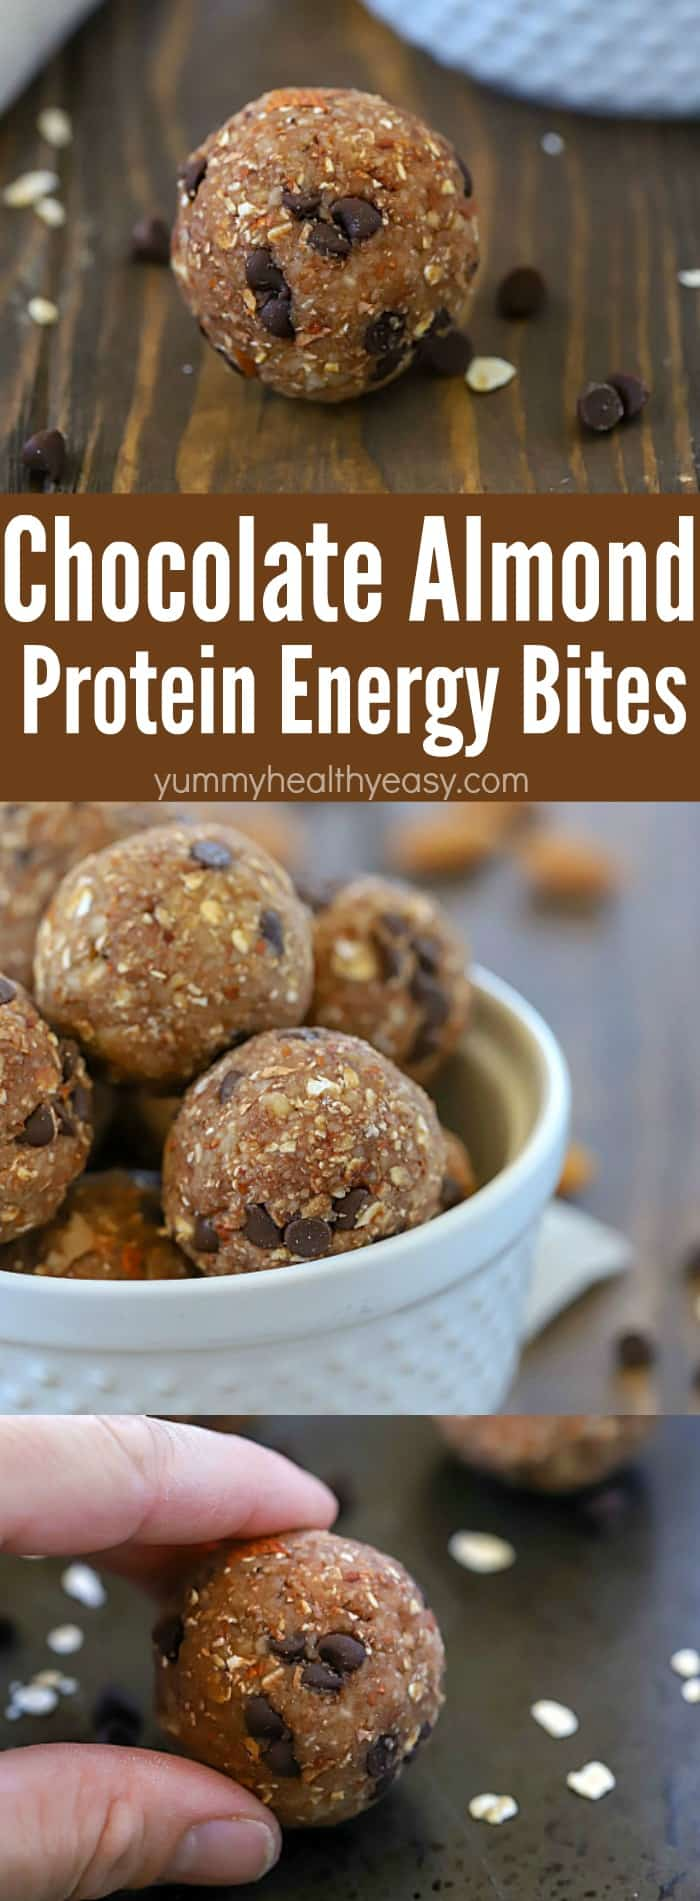 Looking for a easy to grab snack that's packed with flavor AND protein? Try these Chocolate Almond Protein Energy Bites! They're easy to make with only a few ingredients (that you probably already have on hand!) and they taste so yummy! Plus, there are 5 grams of protein in each ball! Do yourself a favor and make a batch of these today! #ad #snack #energybites #protein #healthysnack #chocolate #almond #easy